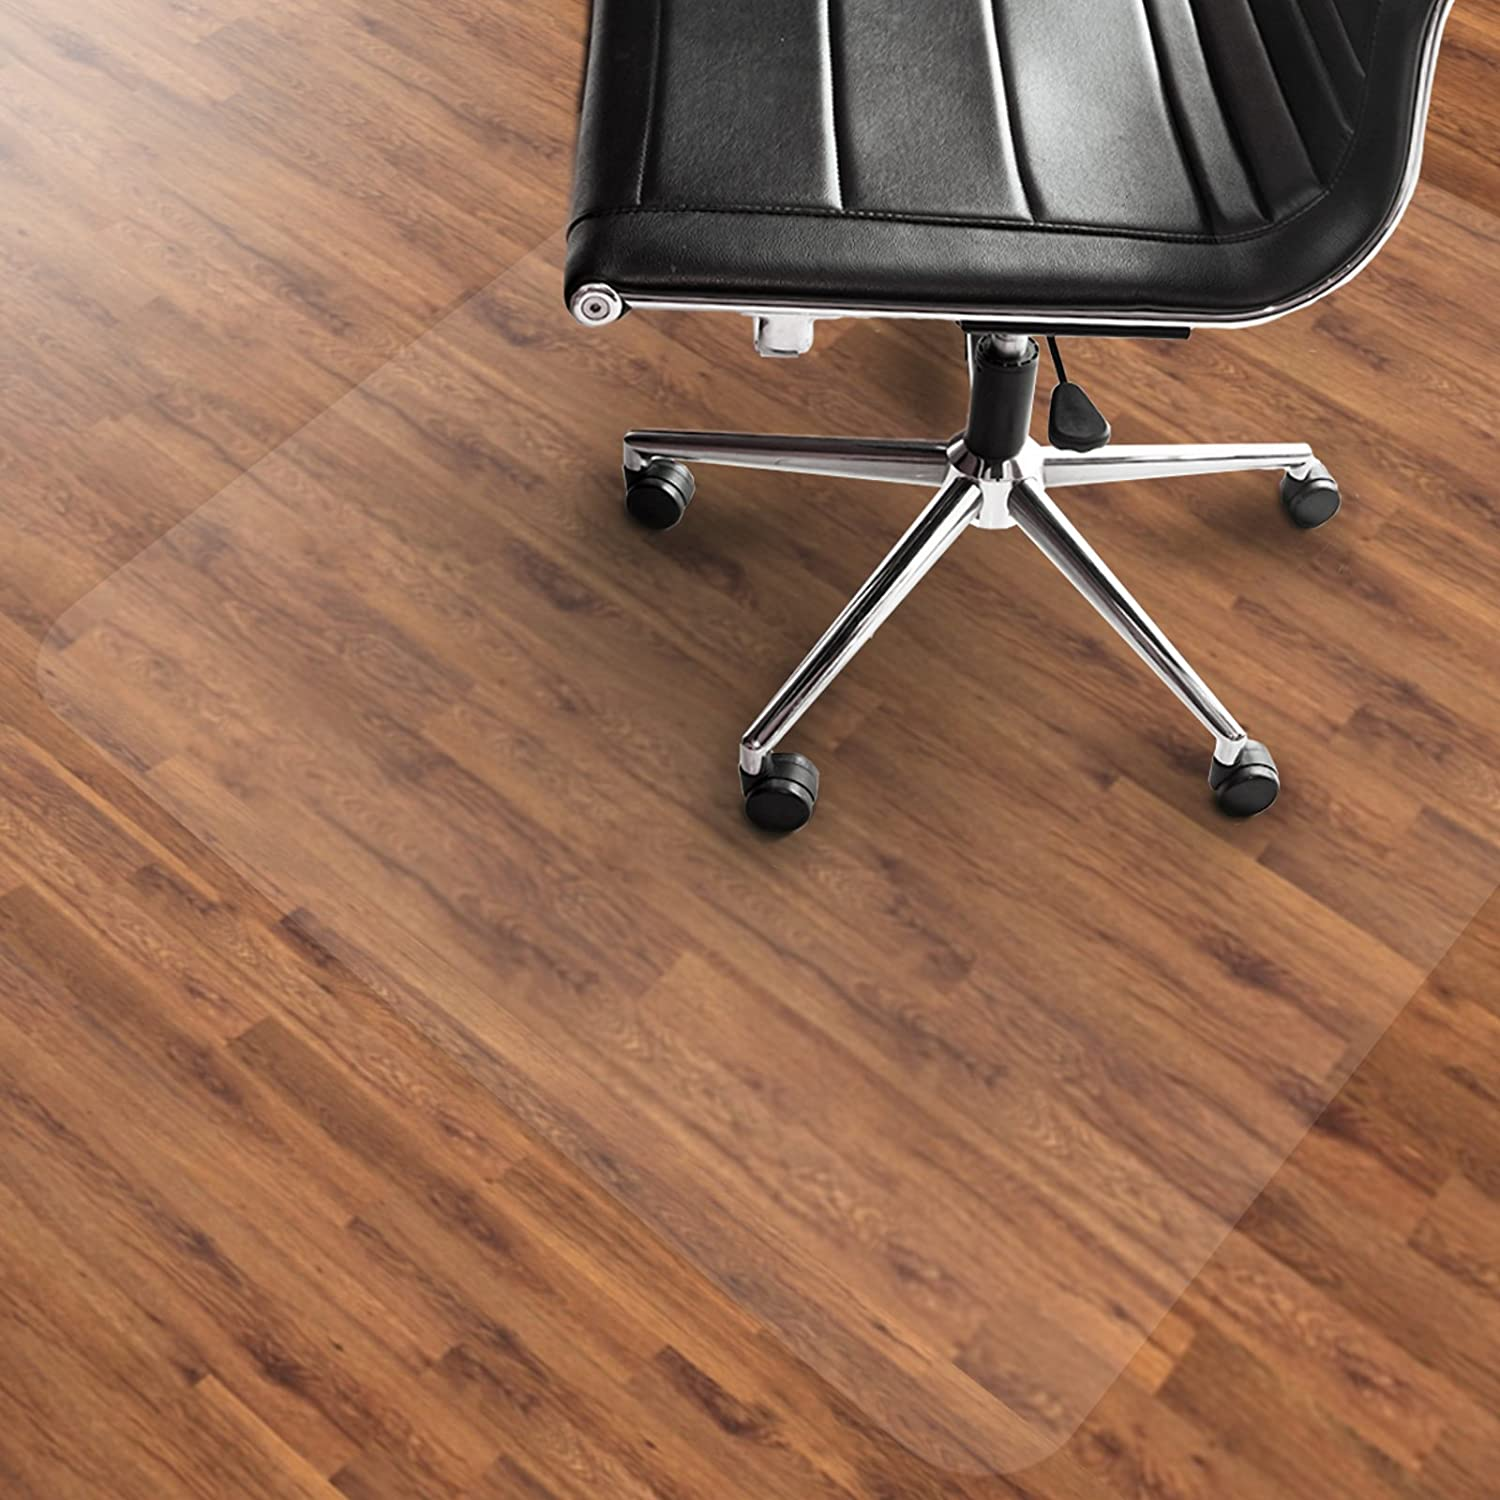 etm PVC Chair Mat, Hard Floor Protection - 75x120cm (2.5'x4') | Multiple Sizes | Highly Transparent